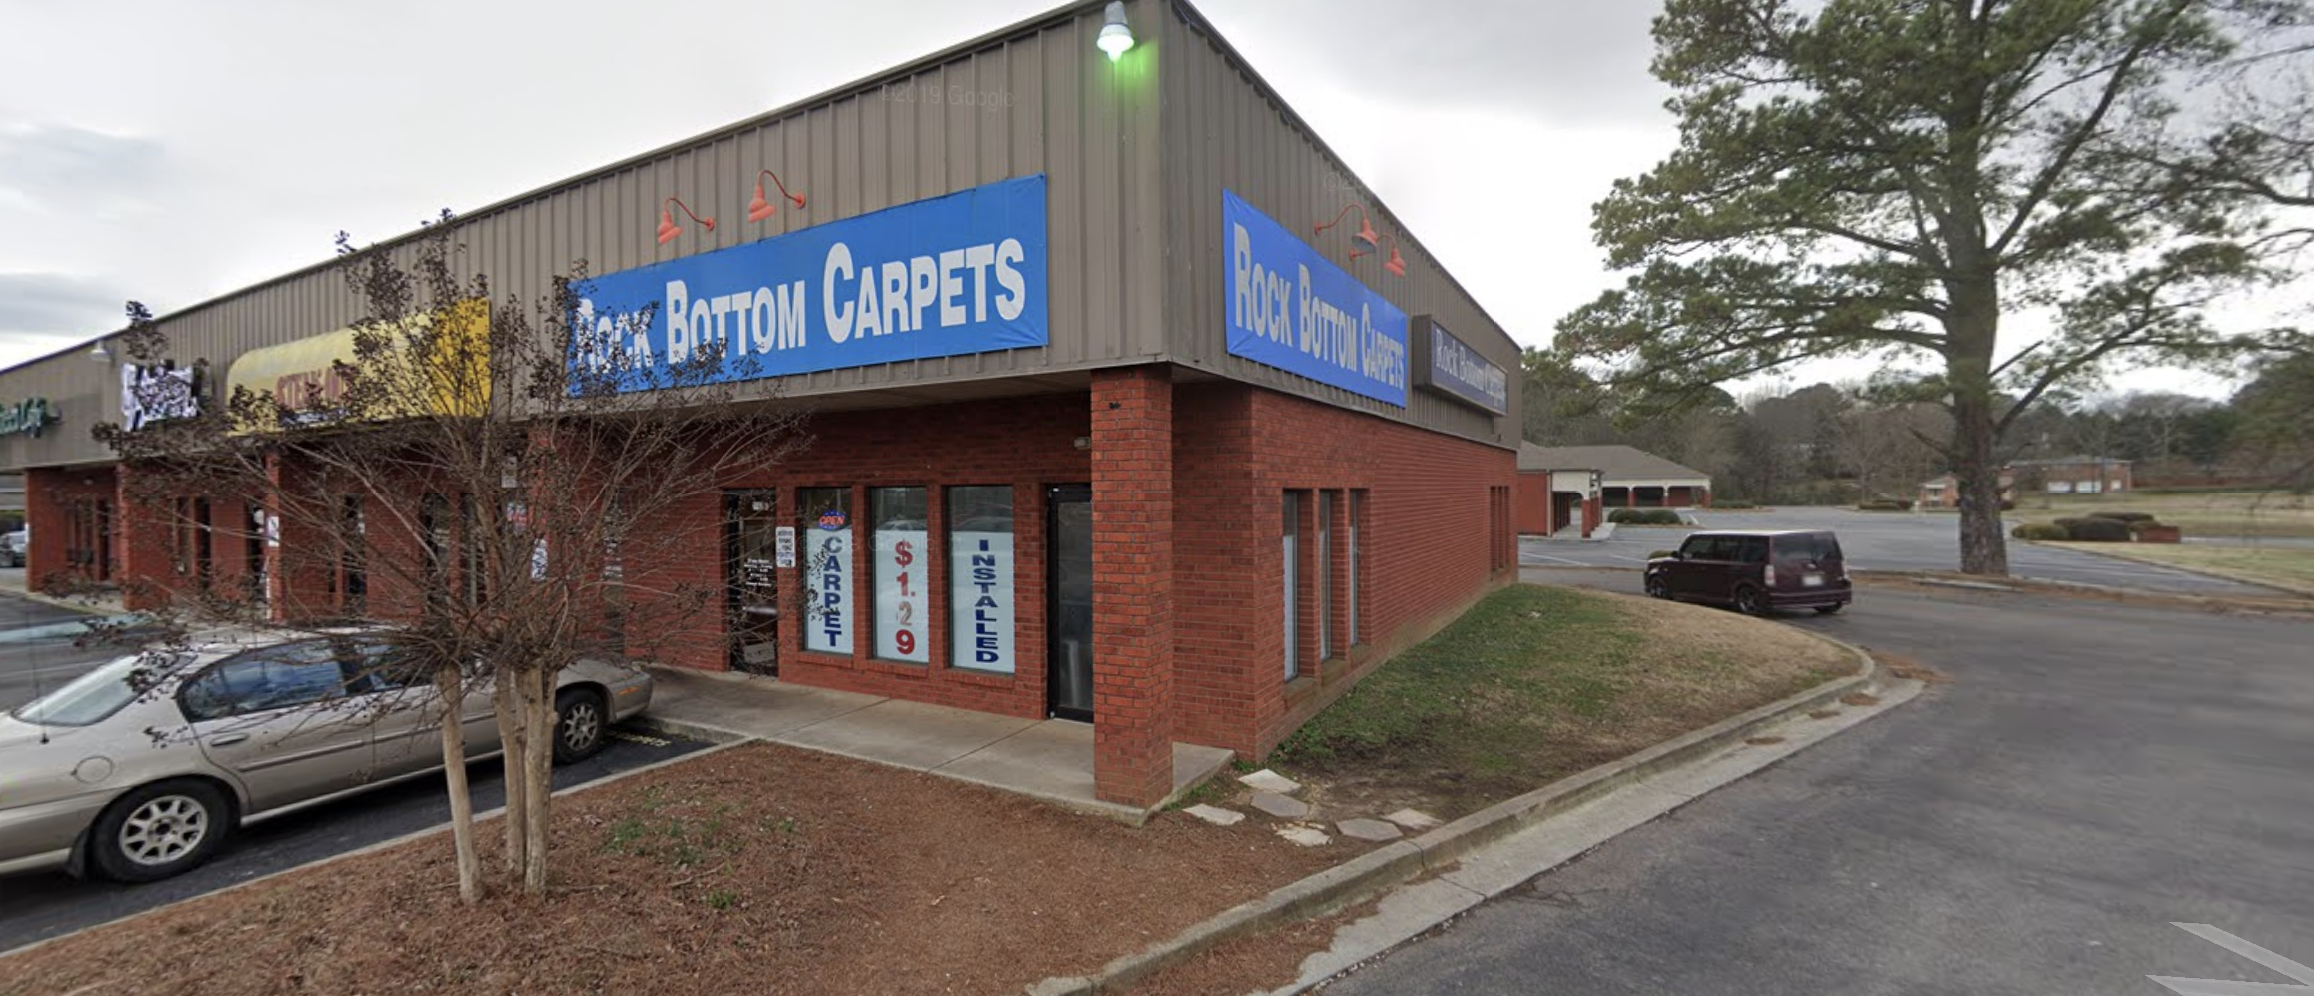 Rock Bottom Carpets - 7143 Hwy 72 W, Madison, AL 35758